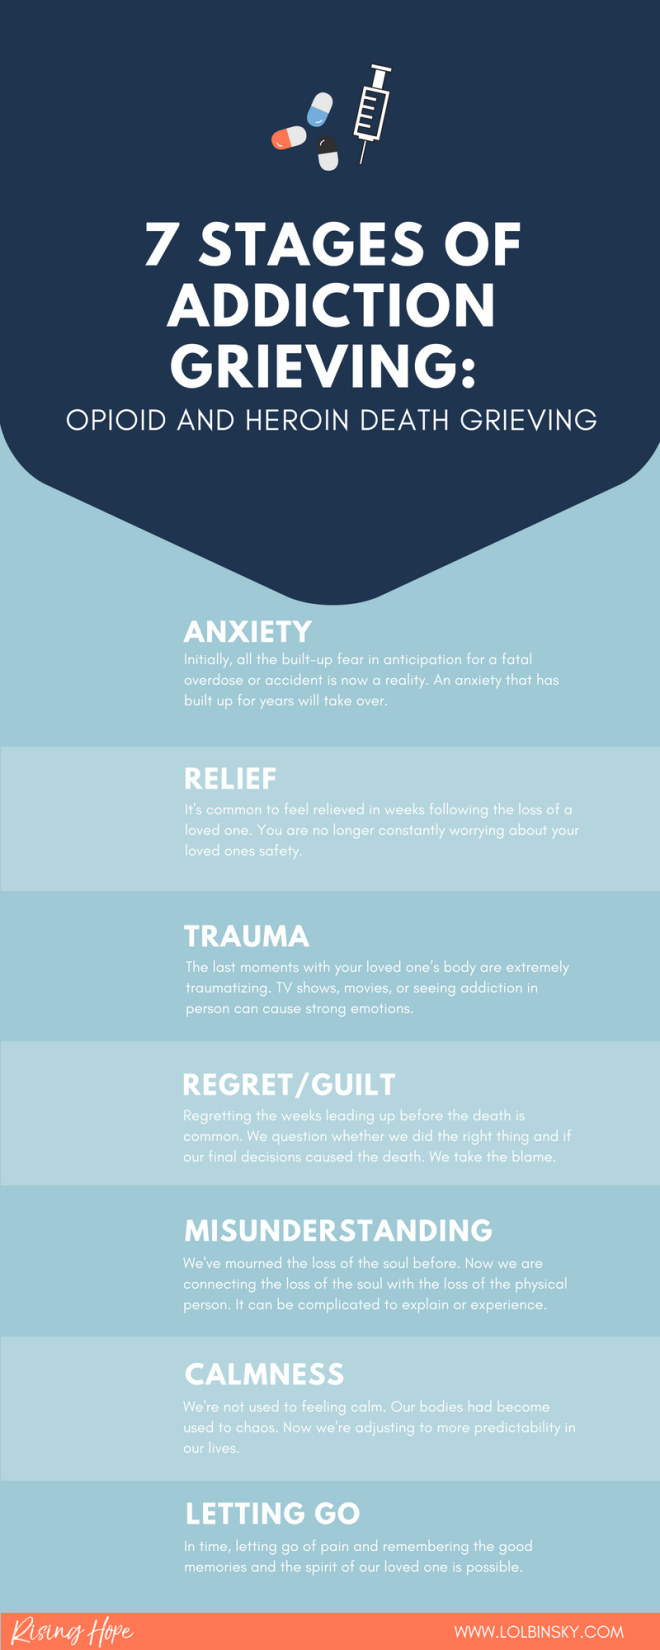 7 stages of grief: addiction grieving